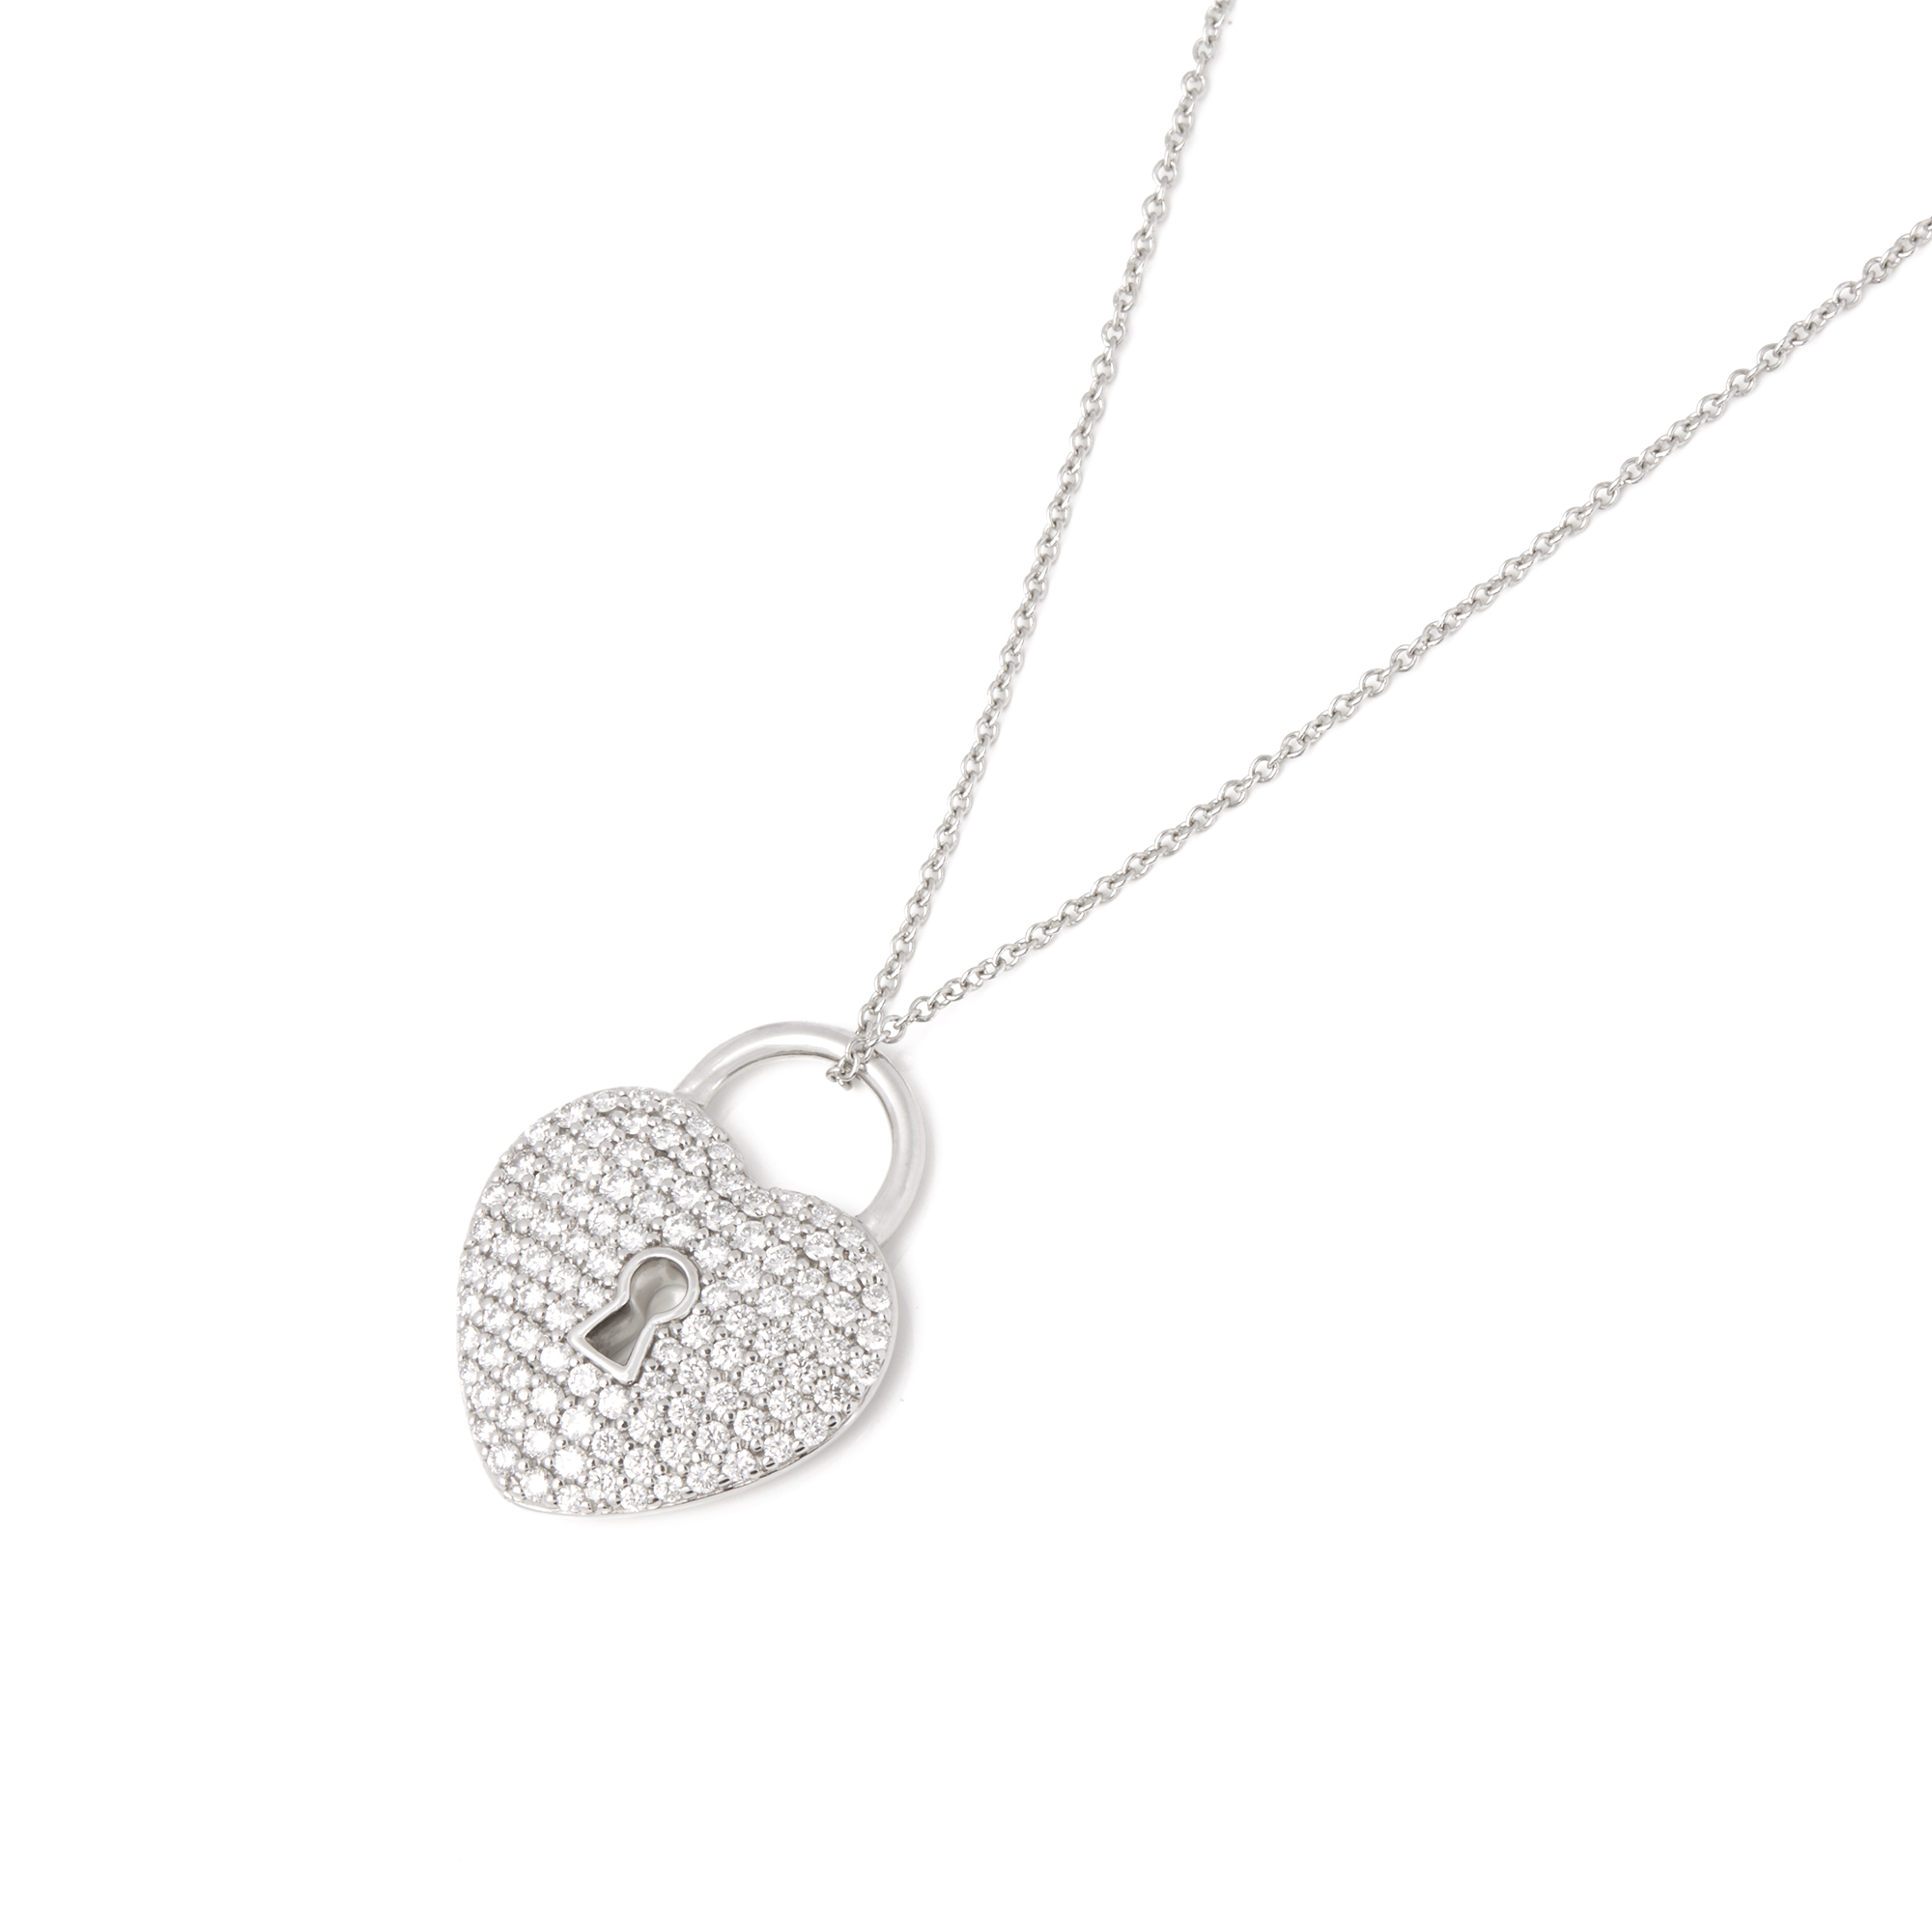 d95809b07 TIFFANY & CO. PLATINUM DIAMOND HEART TIFFANY KEY PENDANT NECKLACE ...